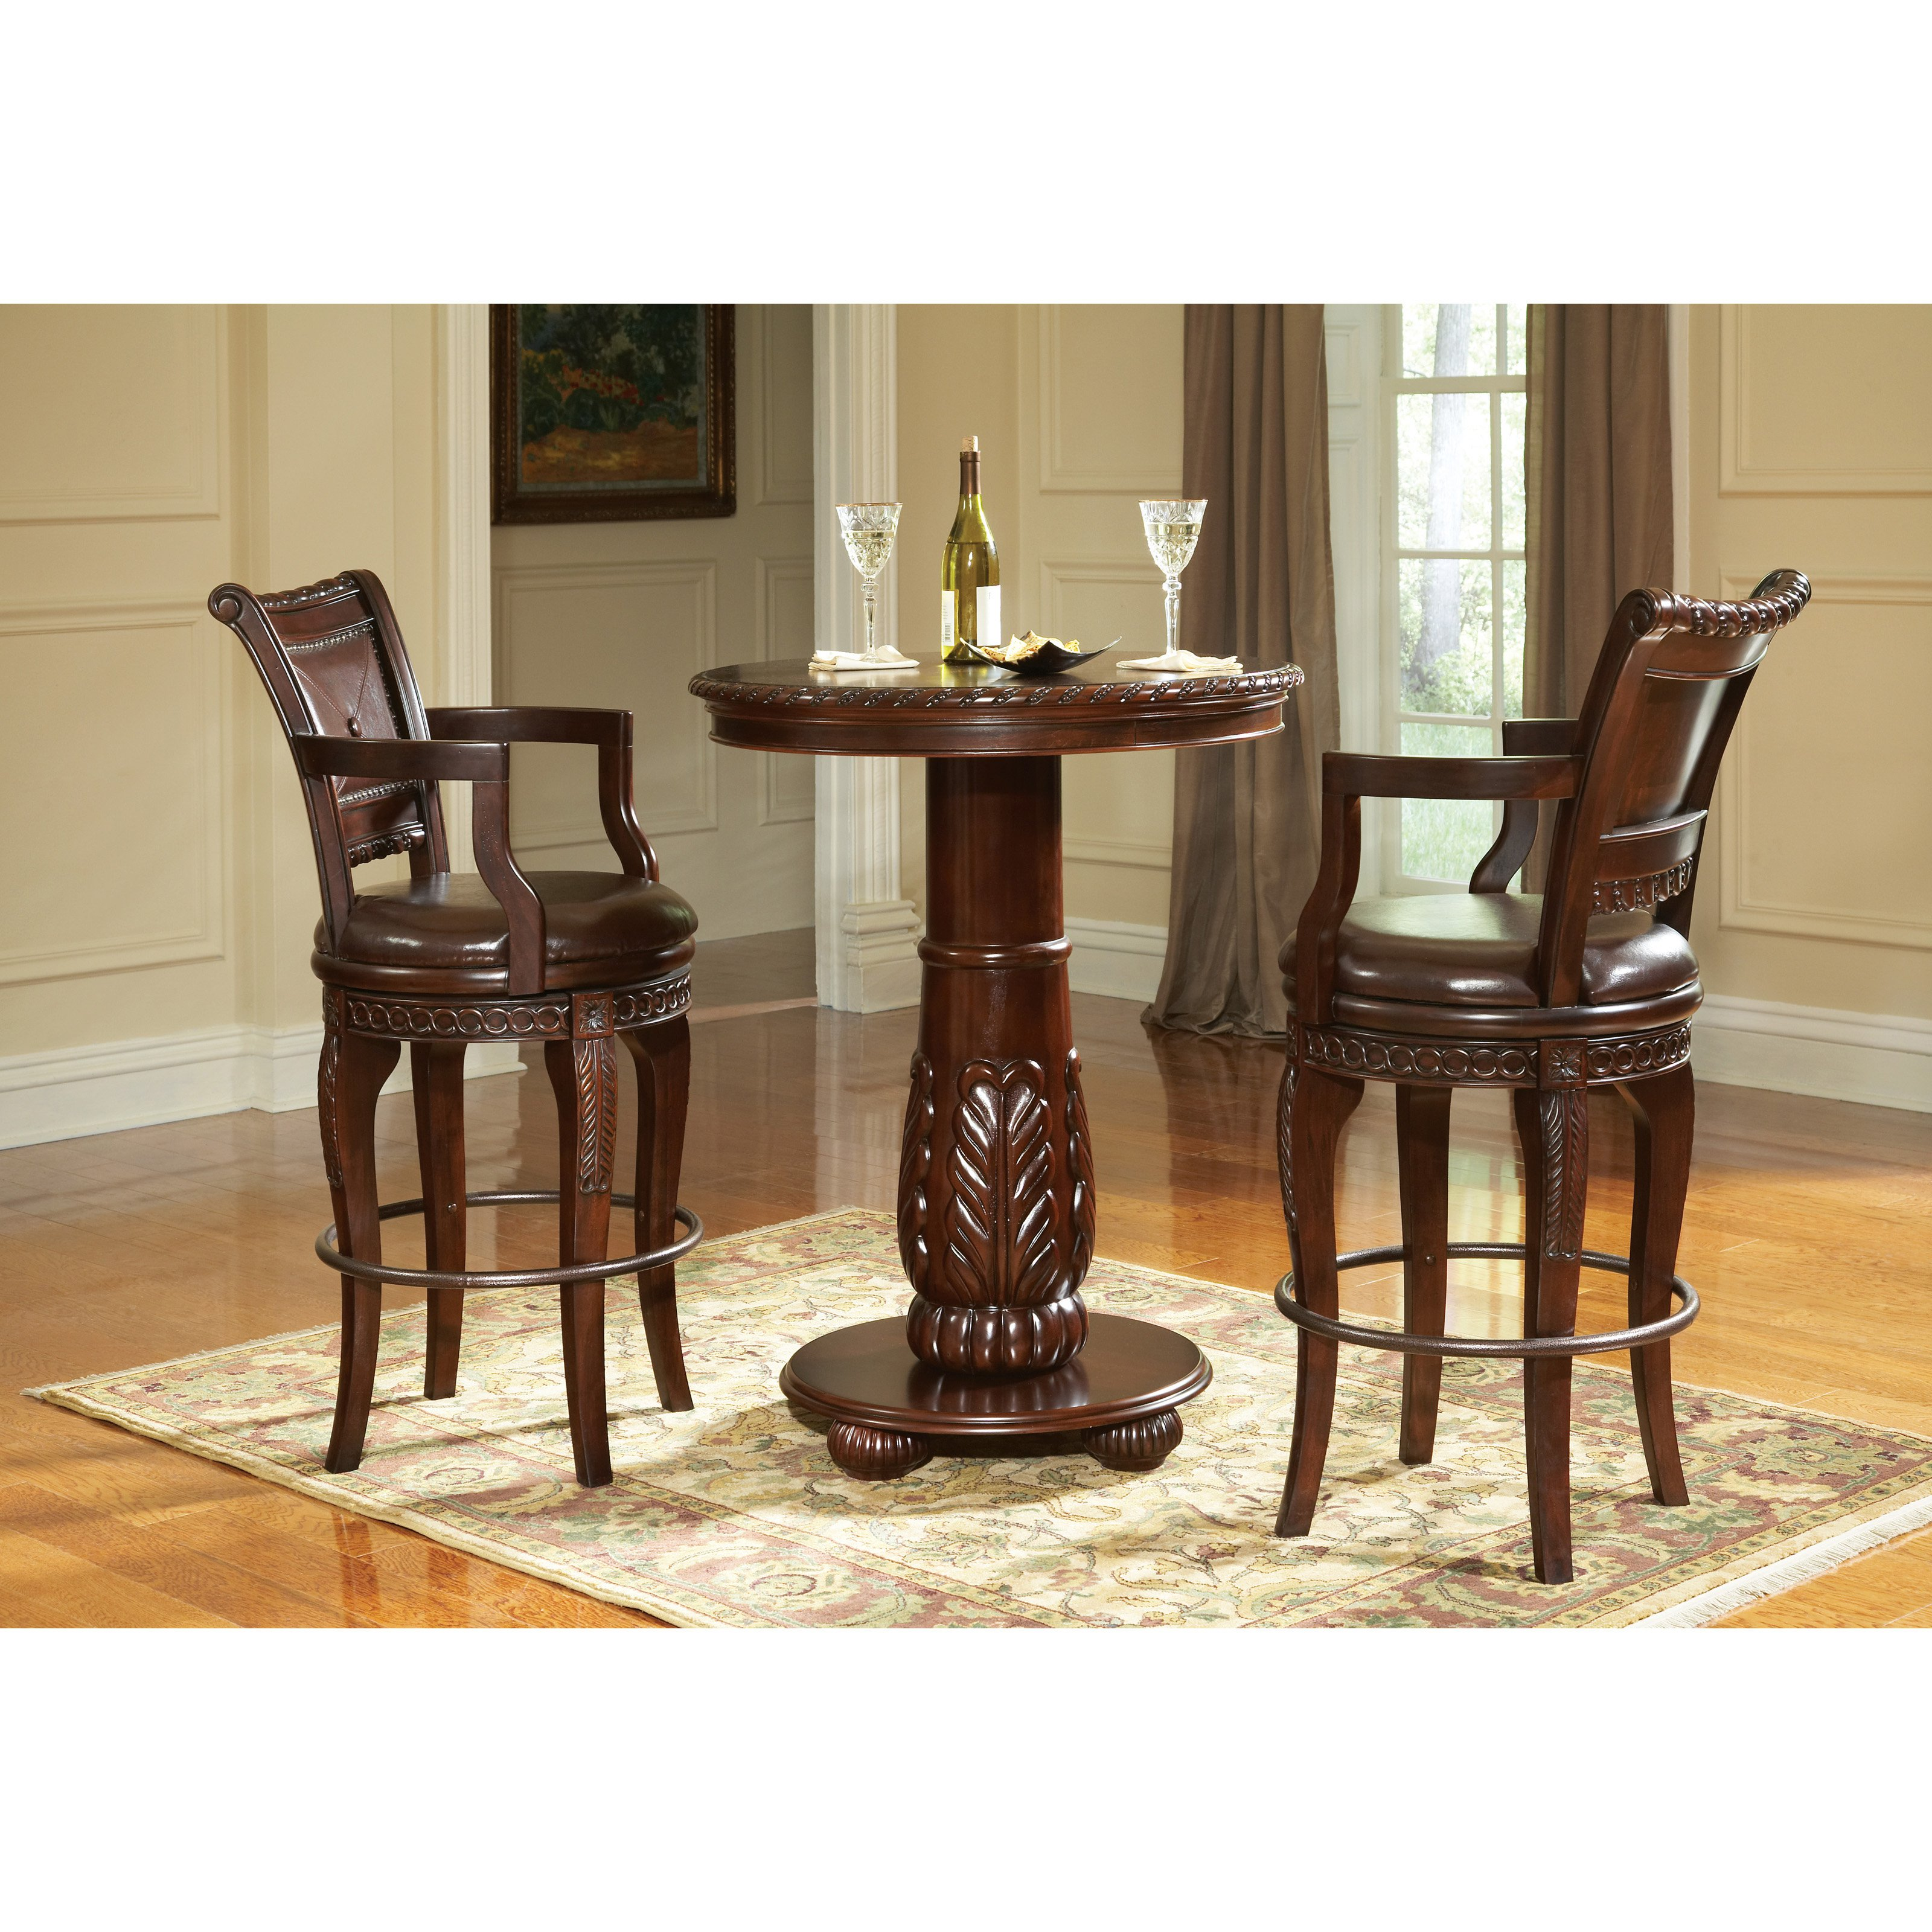 Steve Silver Antoinette 30 in. Swivel Bar Stool With Arms - Cherry - Set of 2